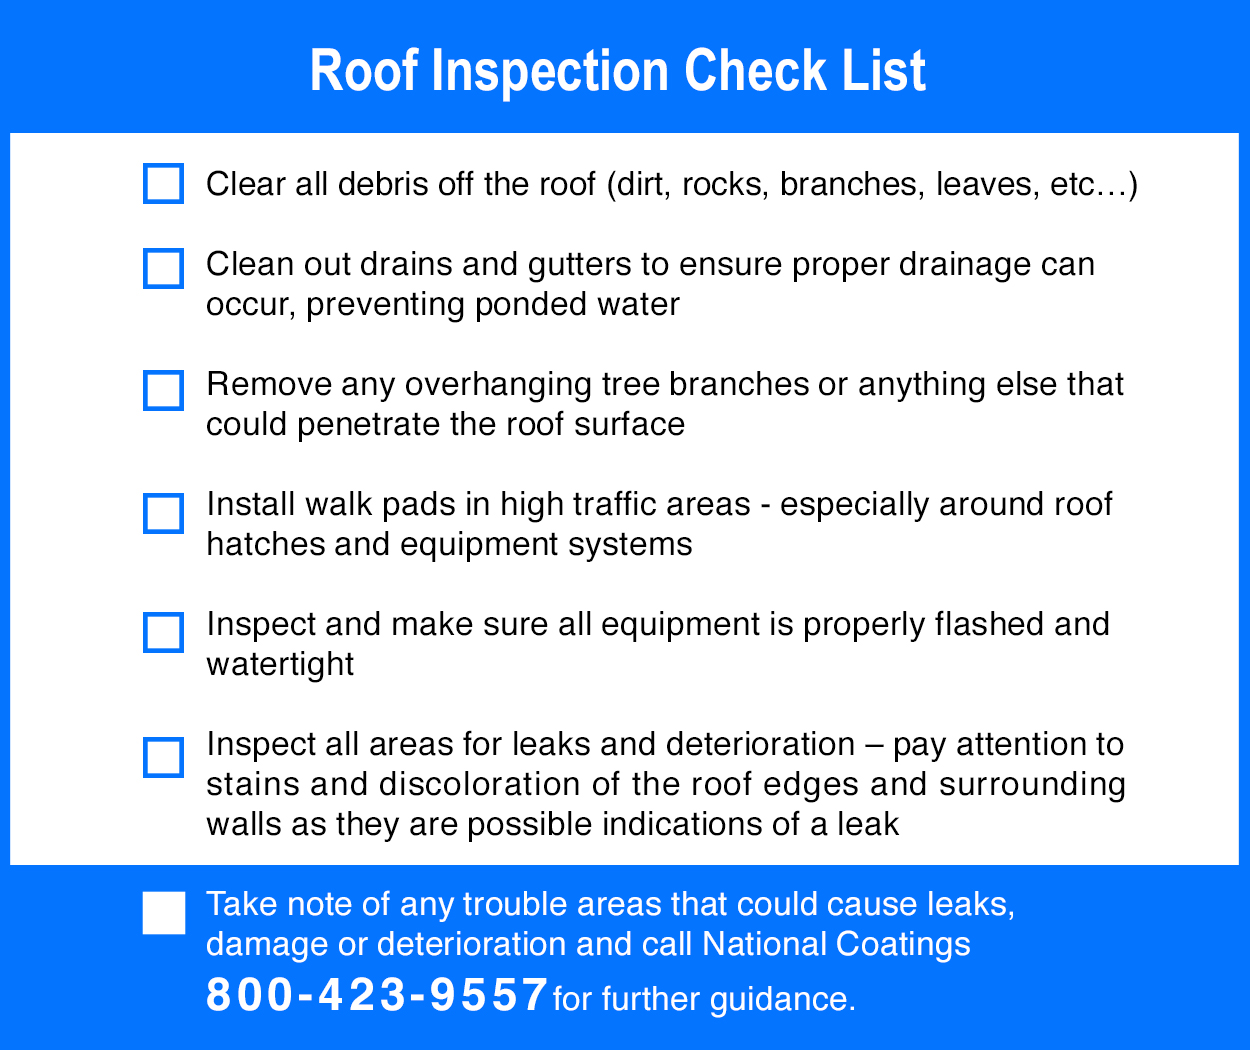 2021 Roof Inspection Checklist